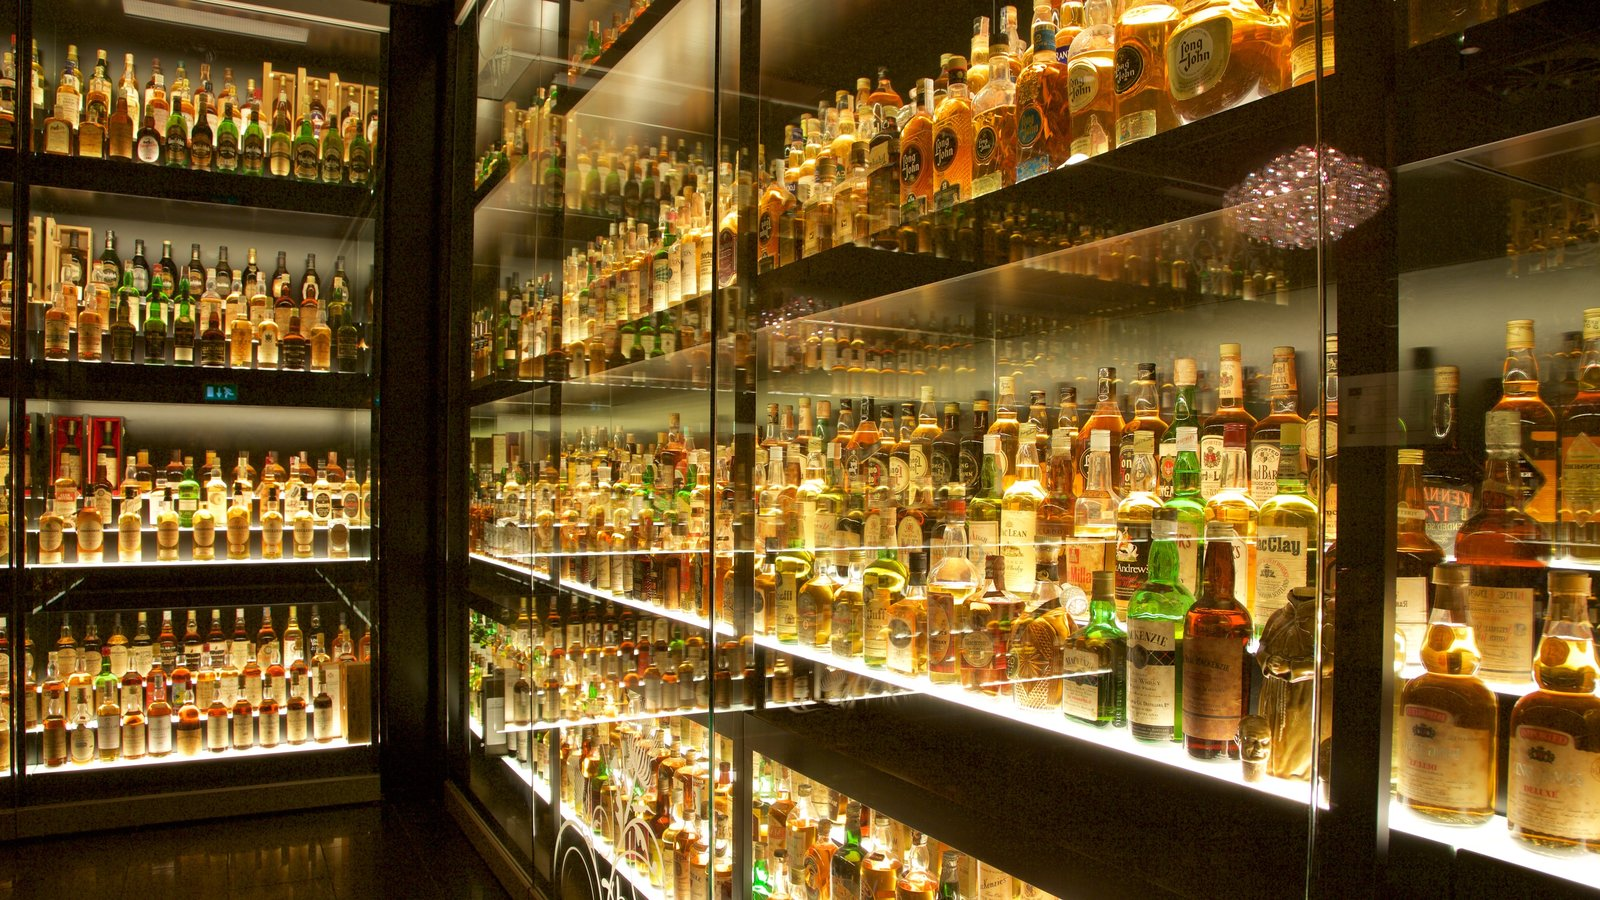 Scotch Whisky Heritage Centre which includes drinks or beverages and interior views